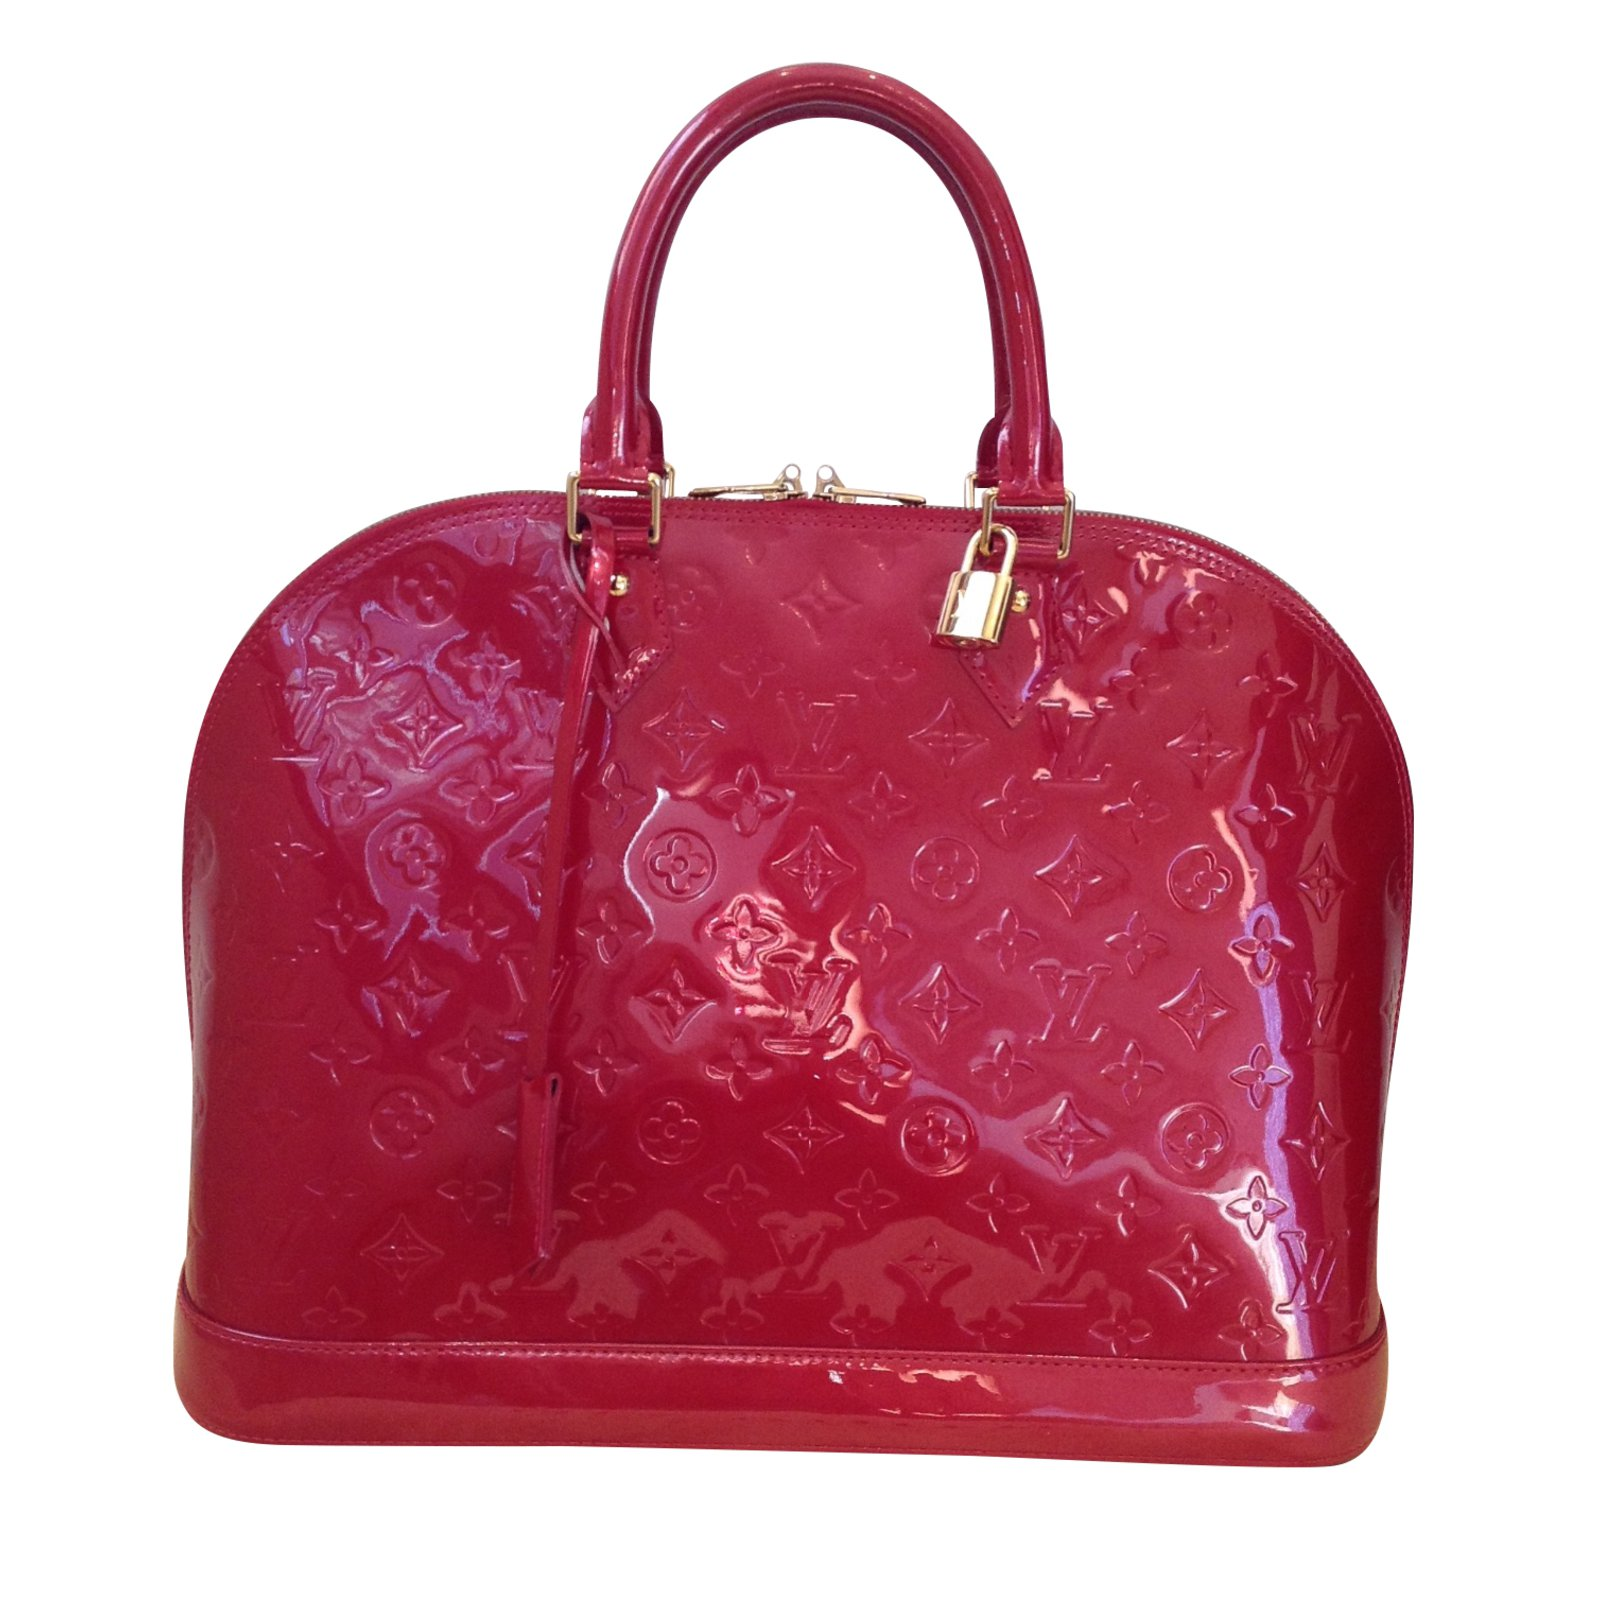 Louis Vuitton Alma Handbags Patent Leather Red Ref 39877